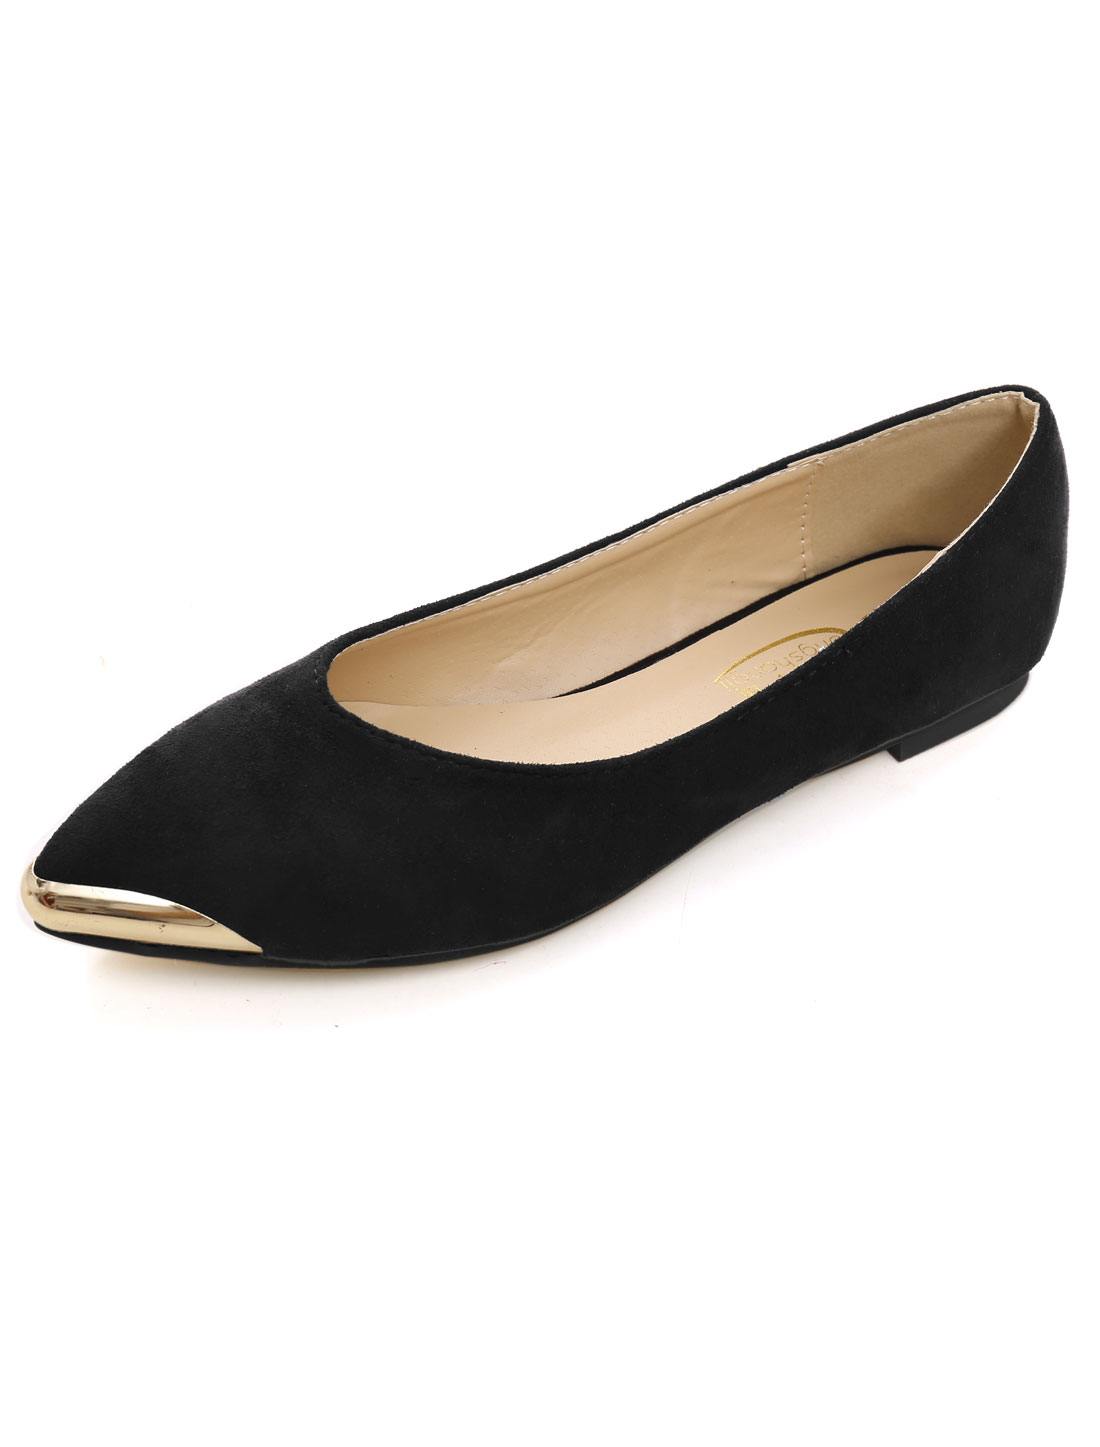 Woman Metallic Decor Faux Suede V-Cut Vamp Pointed Flats Iron Black US 8.5